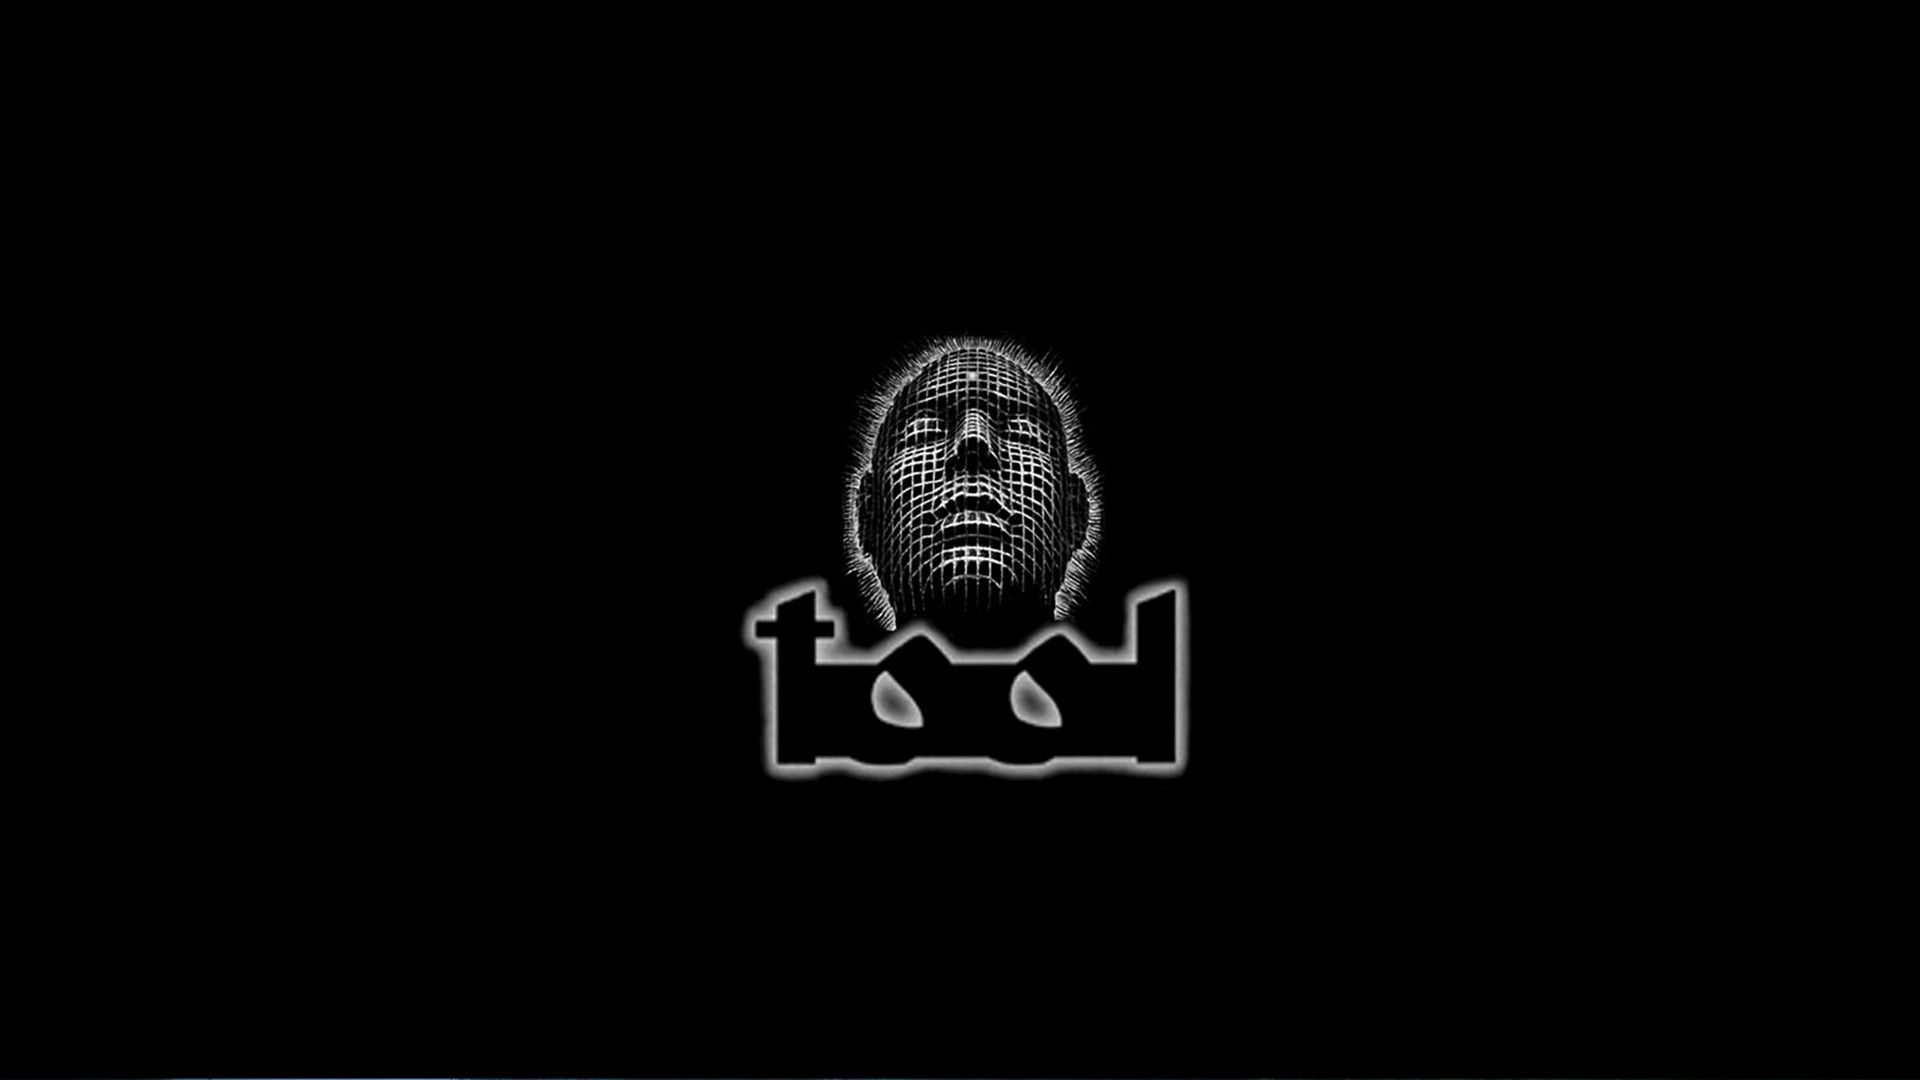 … tool wallpapers 9 by va-guy